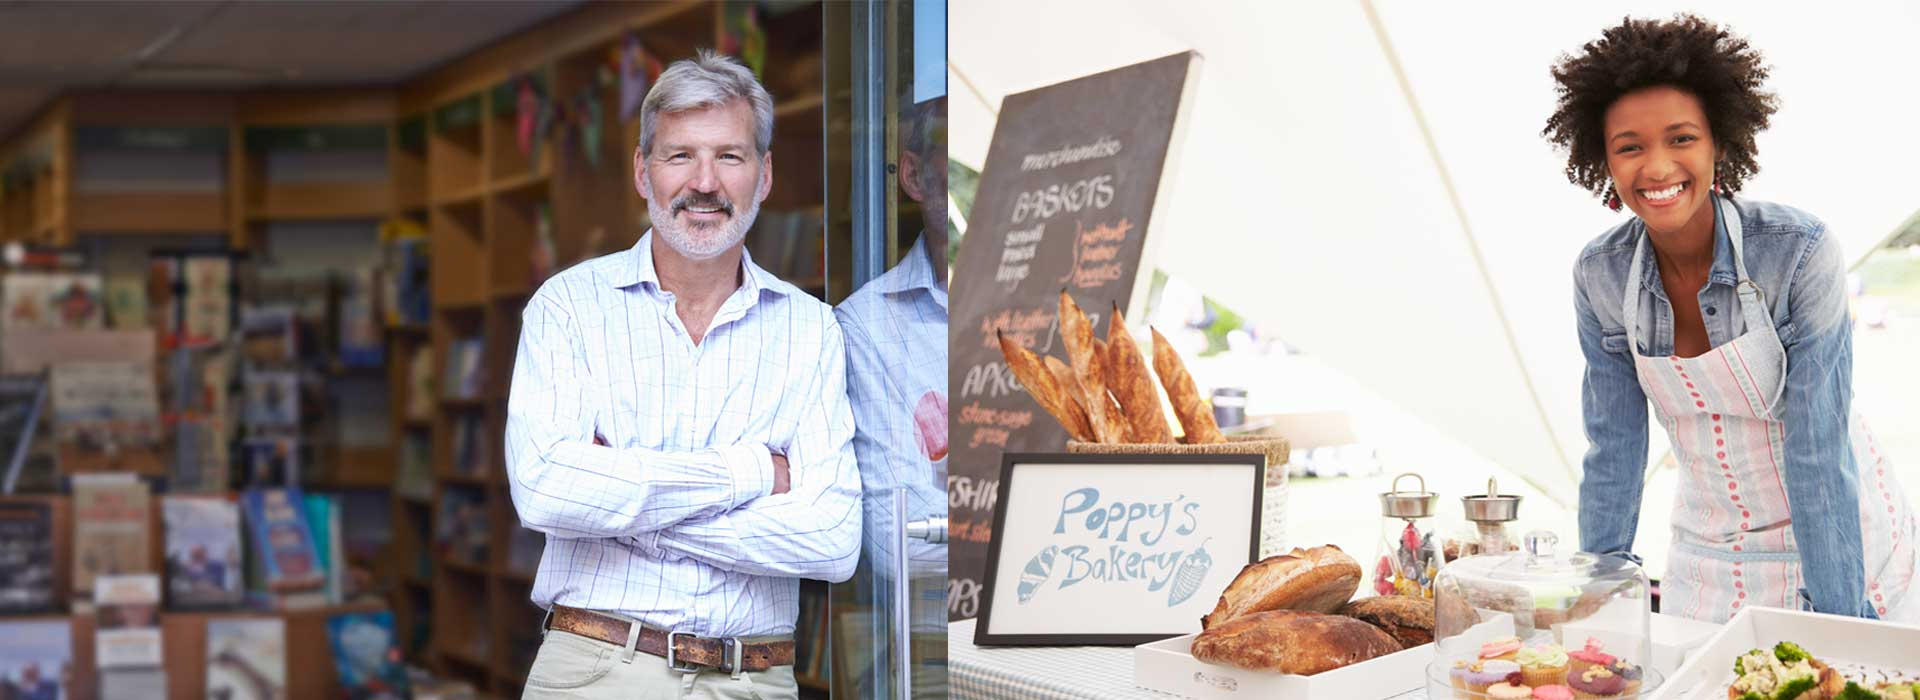 man and women entrepreneurs bakery start-up business